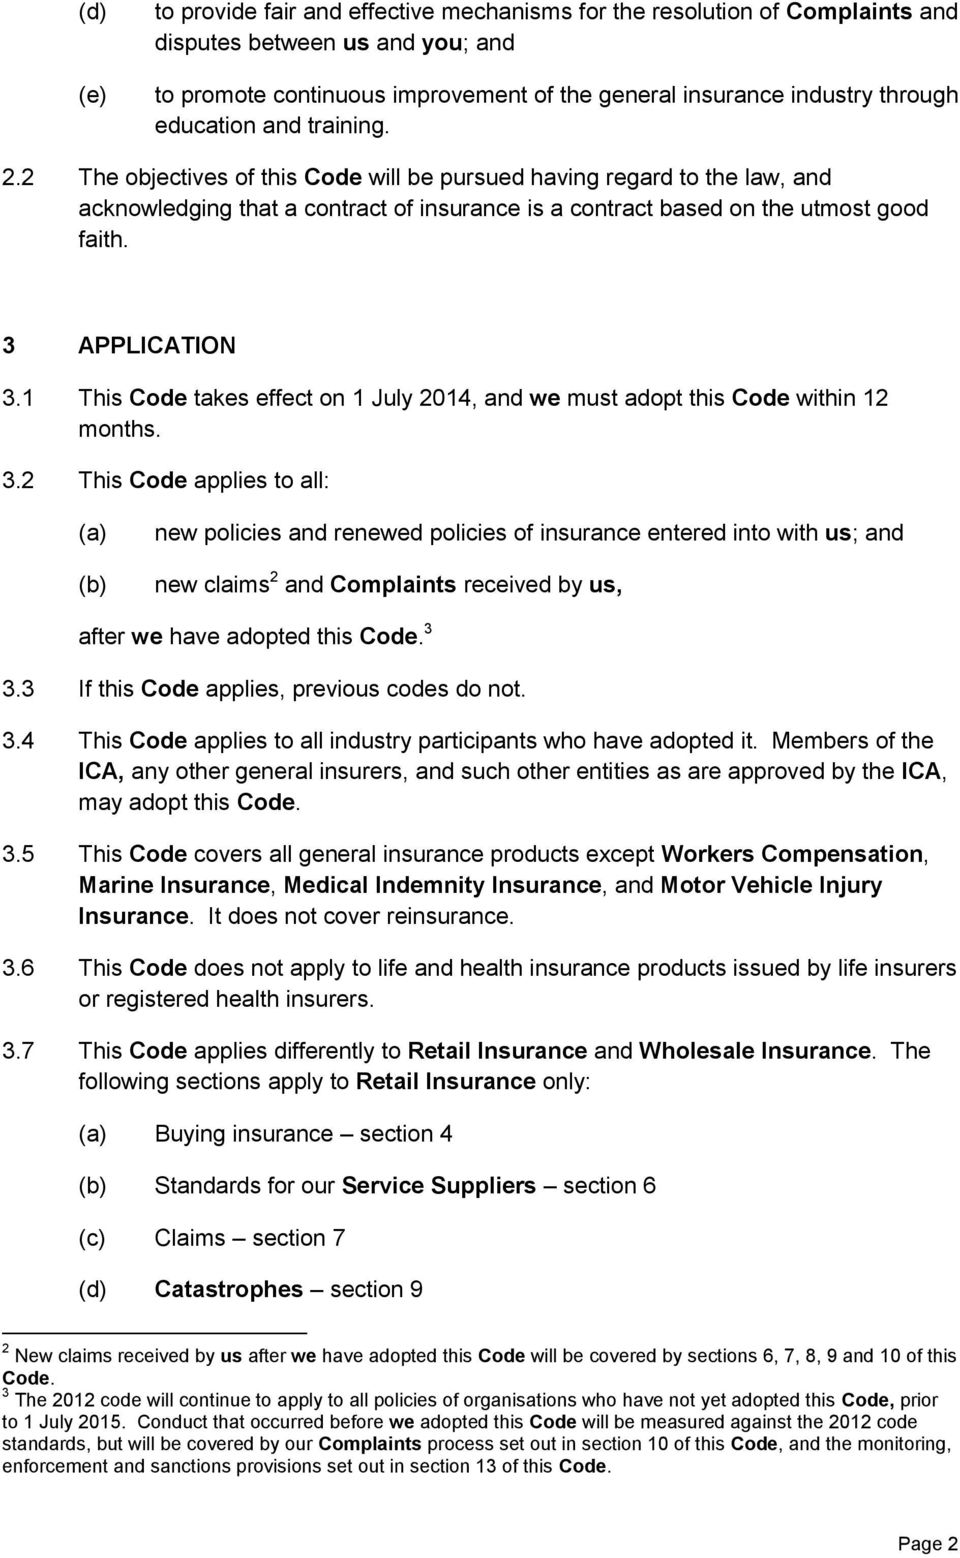 3 APPLICATION 3.1 This Code takes effect on 1 July 2014, and we must adopt this Code within 12 months. 3.2 This Code applies to all: new policies and renewed policies of insurance entered into with us; and new claims 2 and Complaints received by us, after we have adopted this Code.